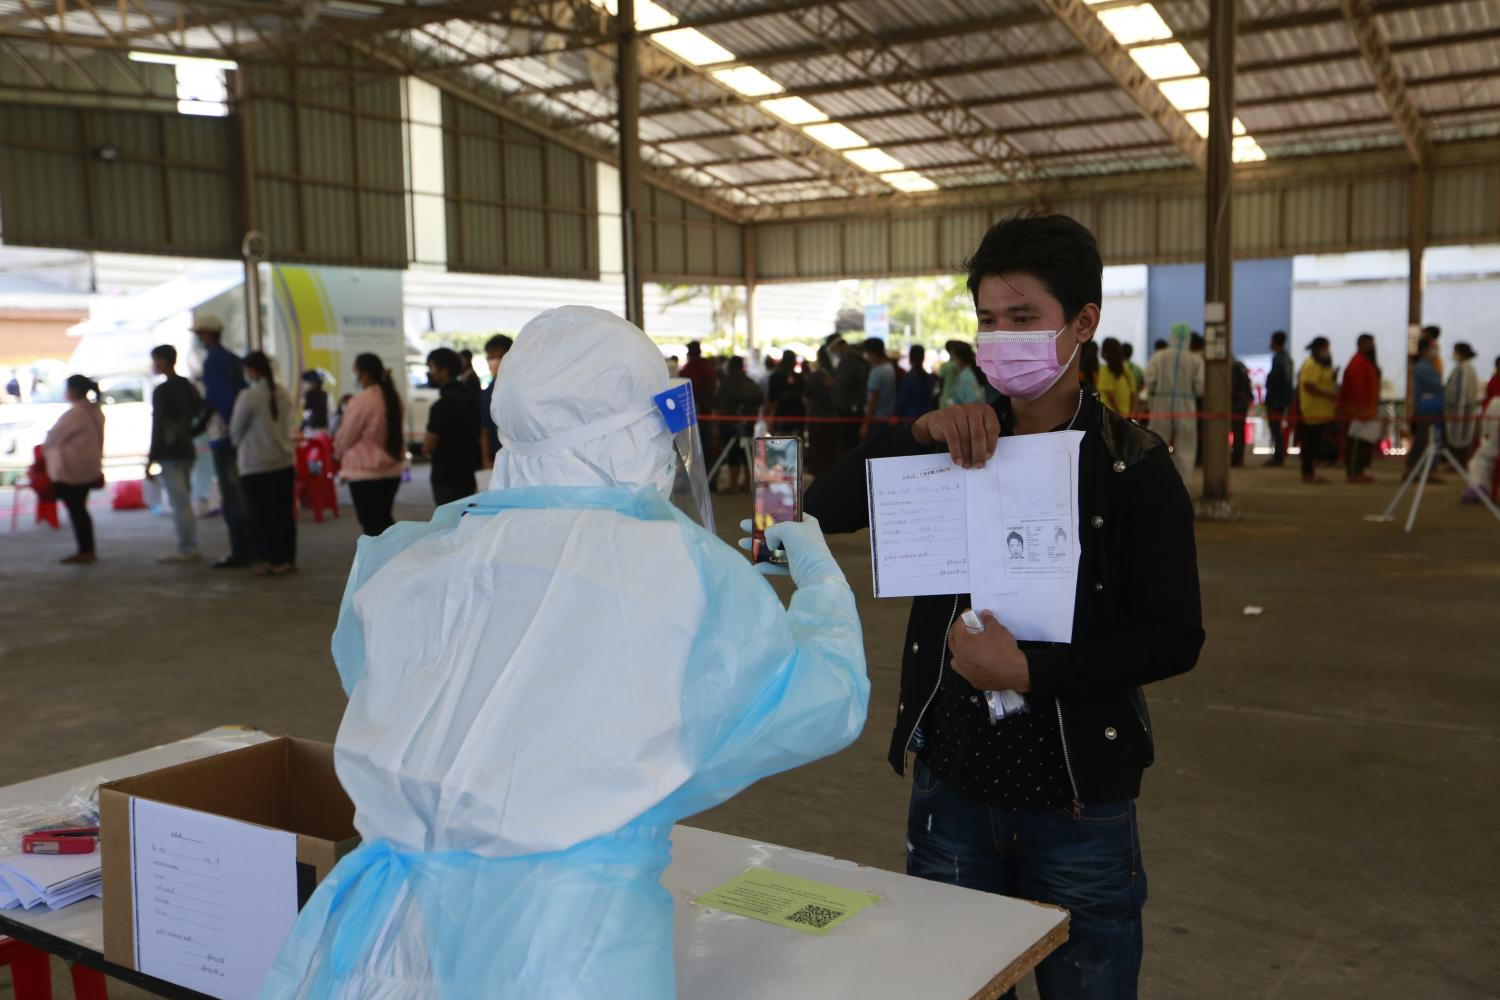 Migrant workers receive assistance on Tuesday at a Covid-19 testing centre in Baan Eua Arthorn Tha Chin in Samut Sakhon. (Photo by Arnun Chonmahatrakool)